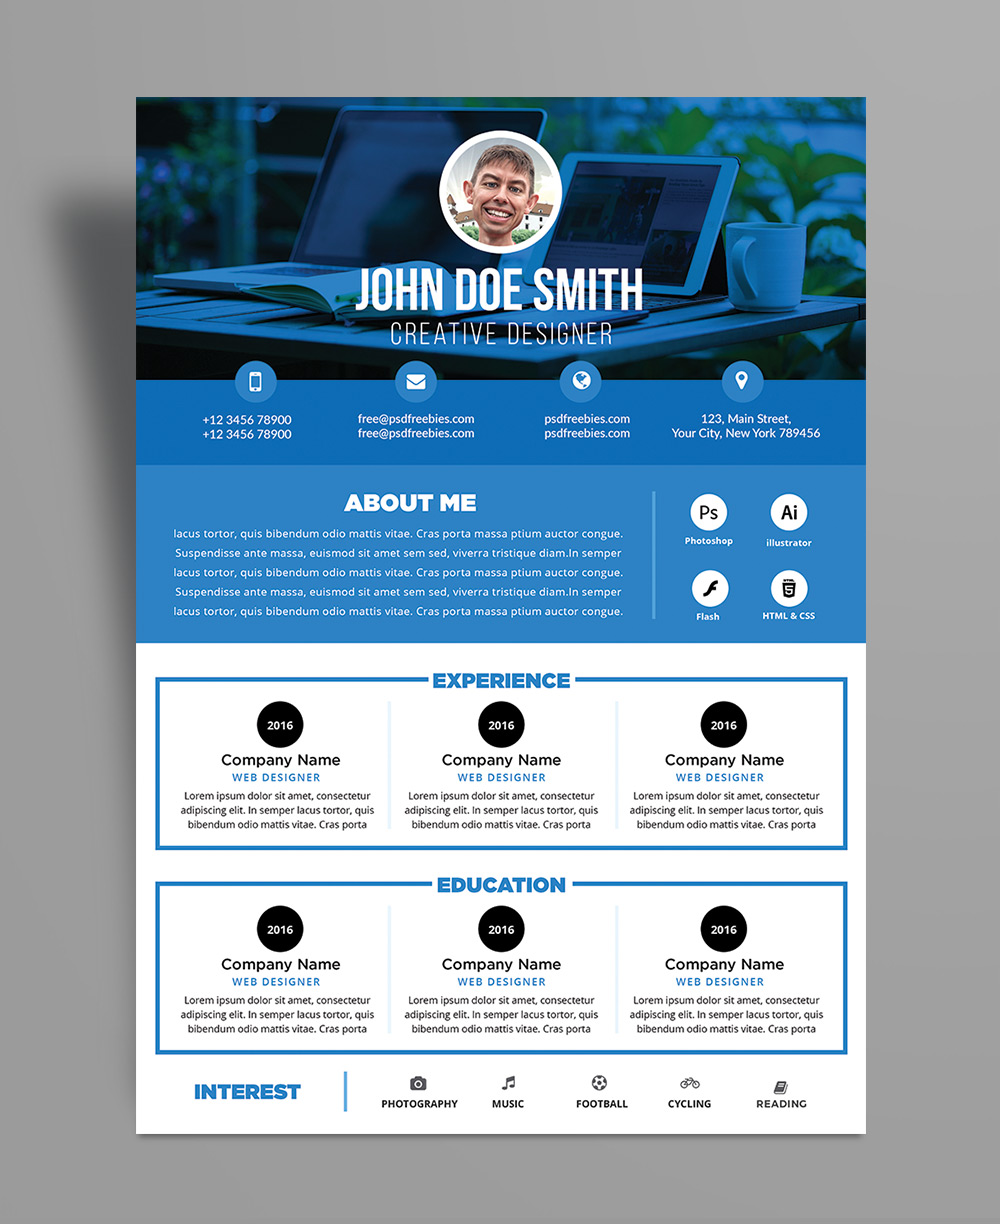 Free Professional Resume (CV) Design Template PSD File (2)